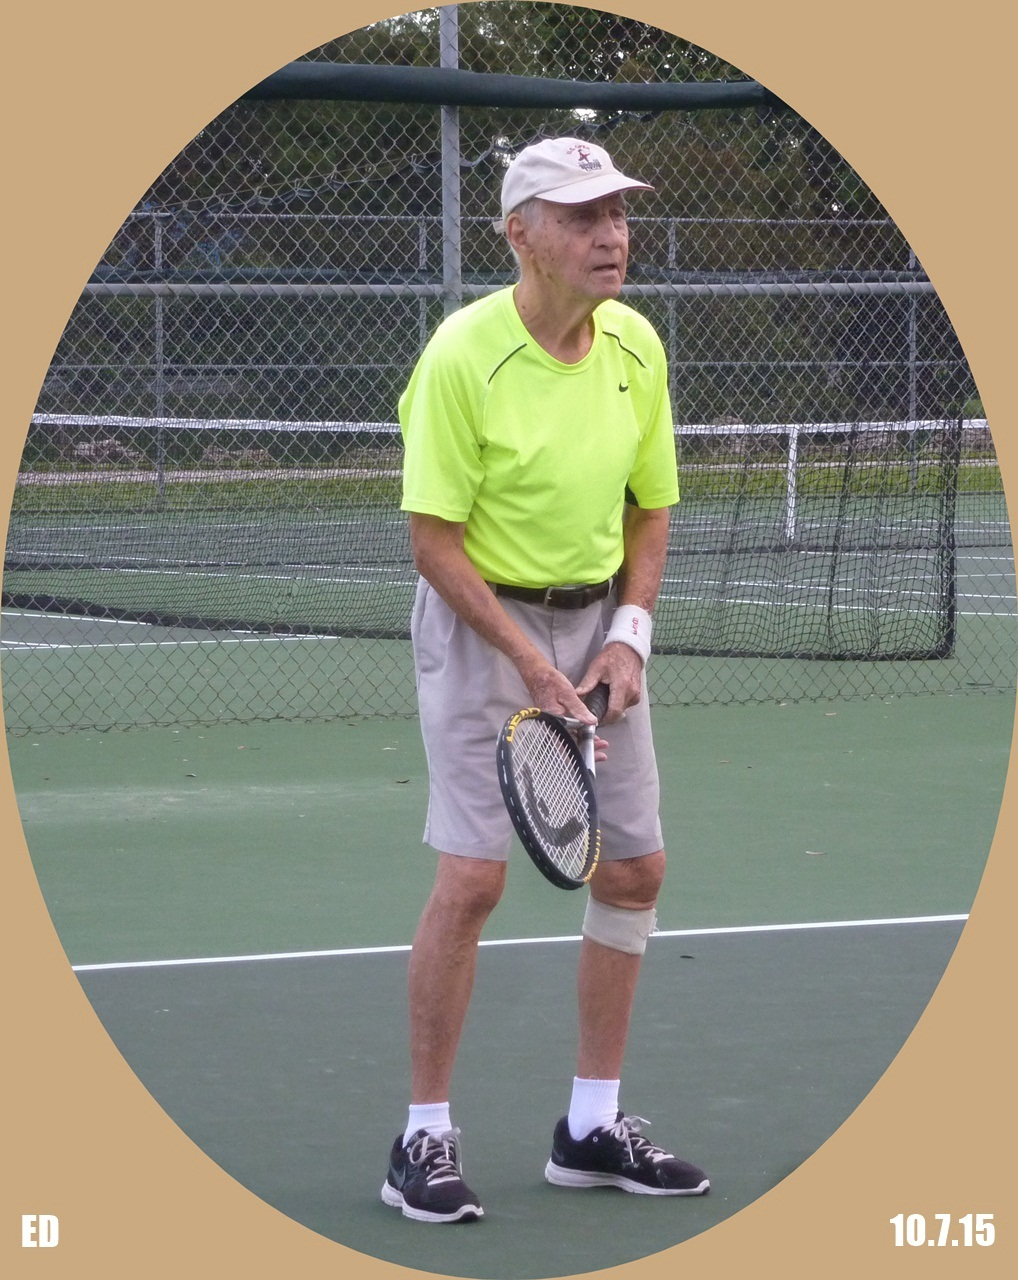 Ed playing tennis at Rutenberg....he was a good player too!